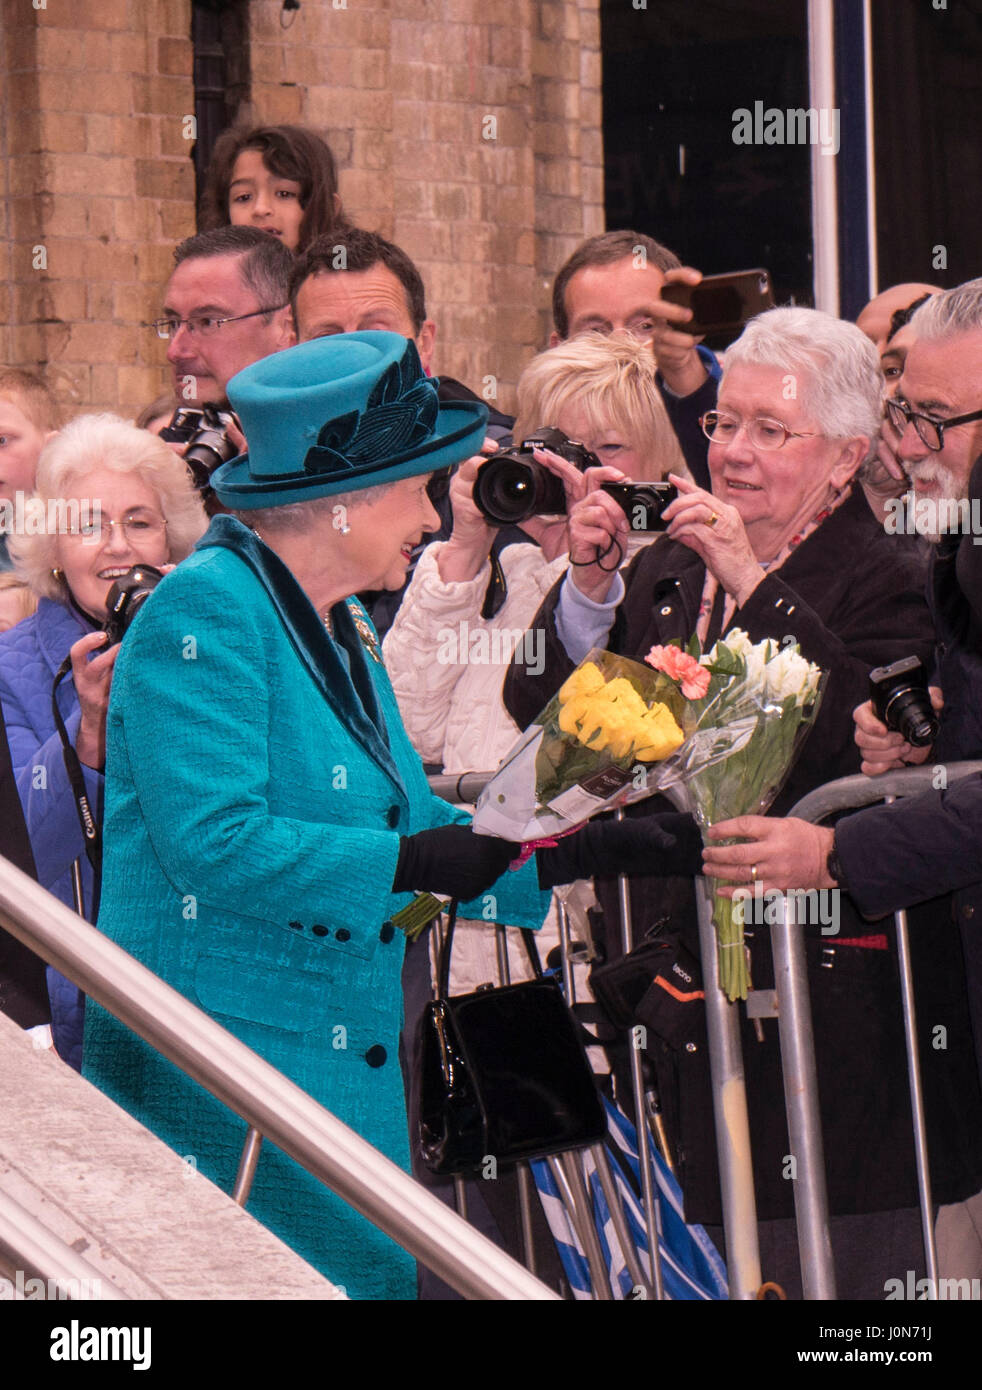 Leicester, UK. Thursday 13th April 2017. Her Majesty Queen Elizabeth II is presented with flowers as she and The Stock Photo